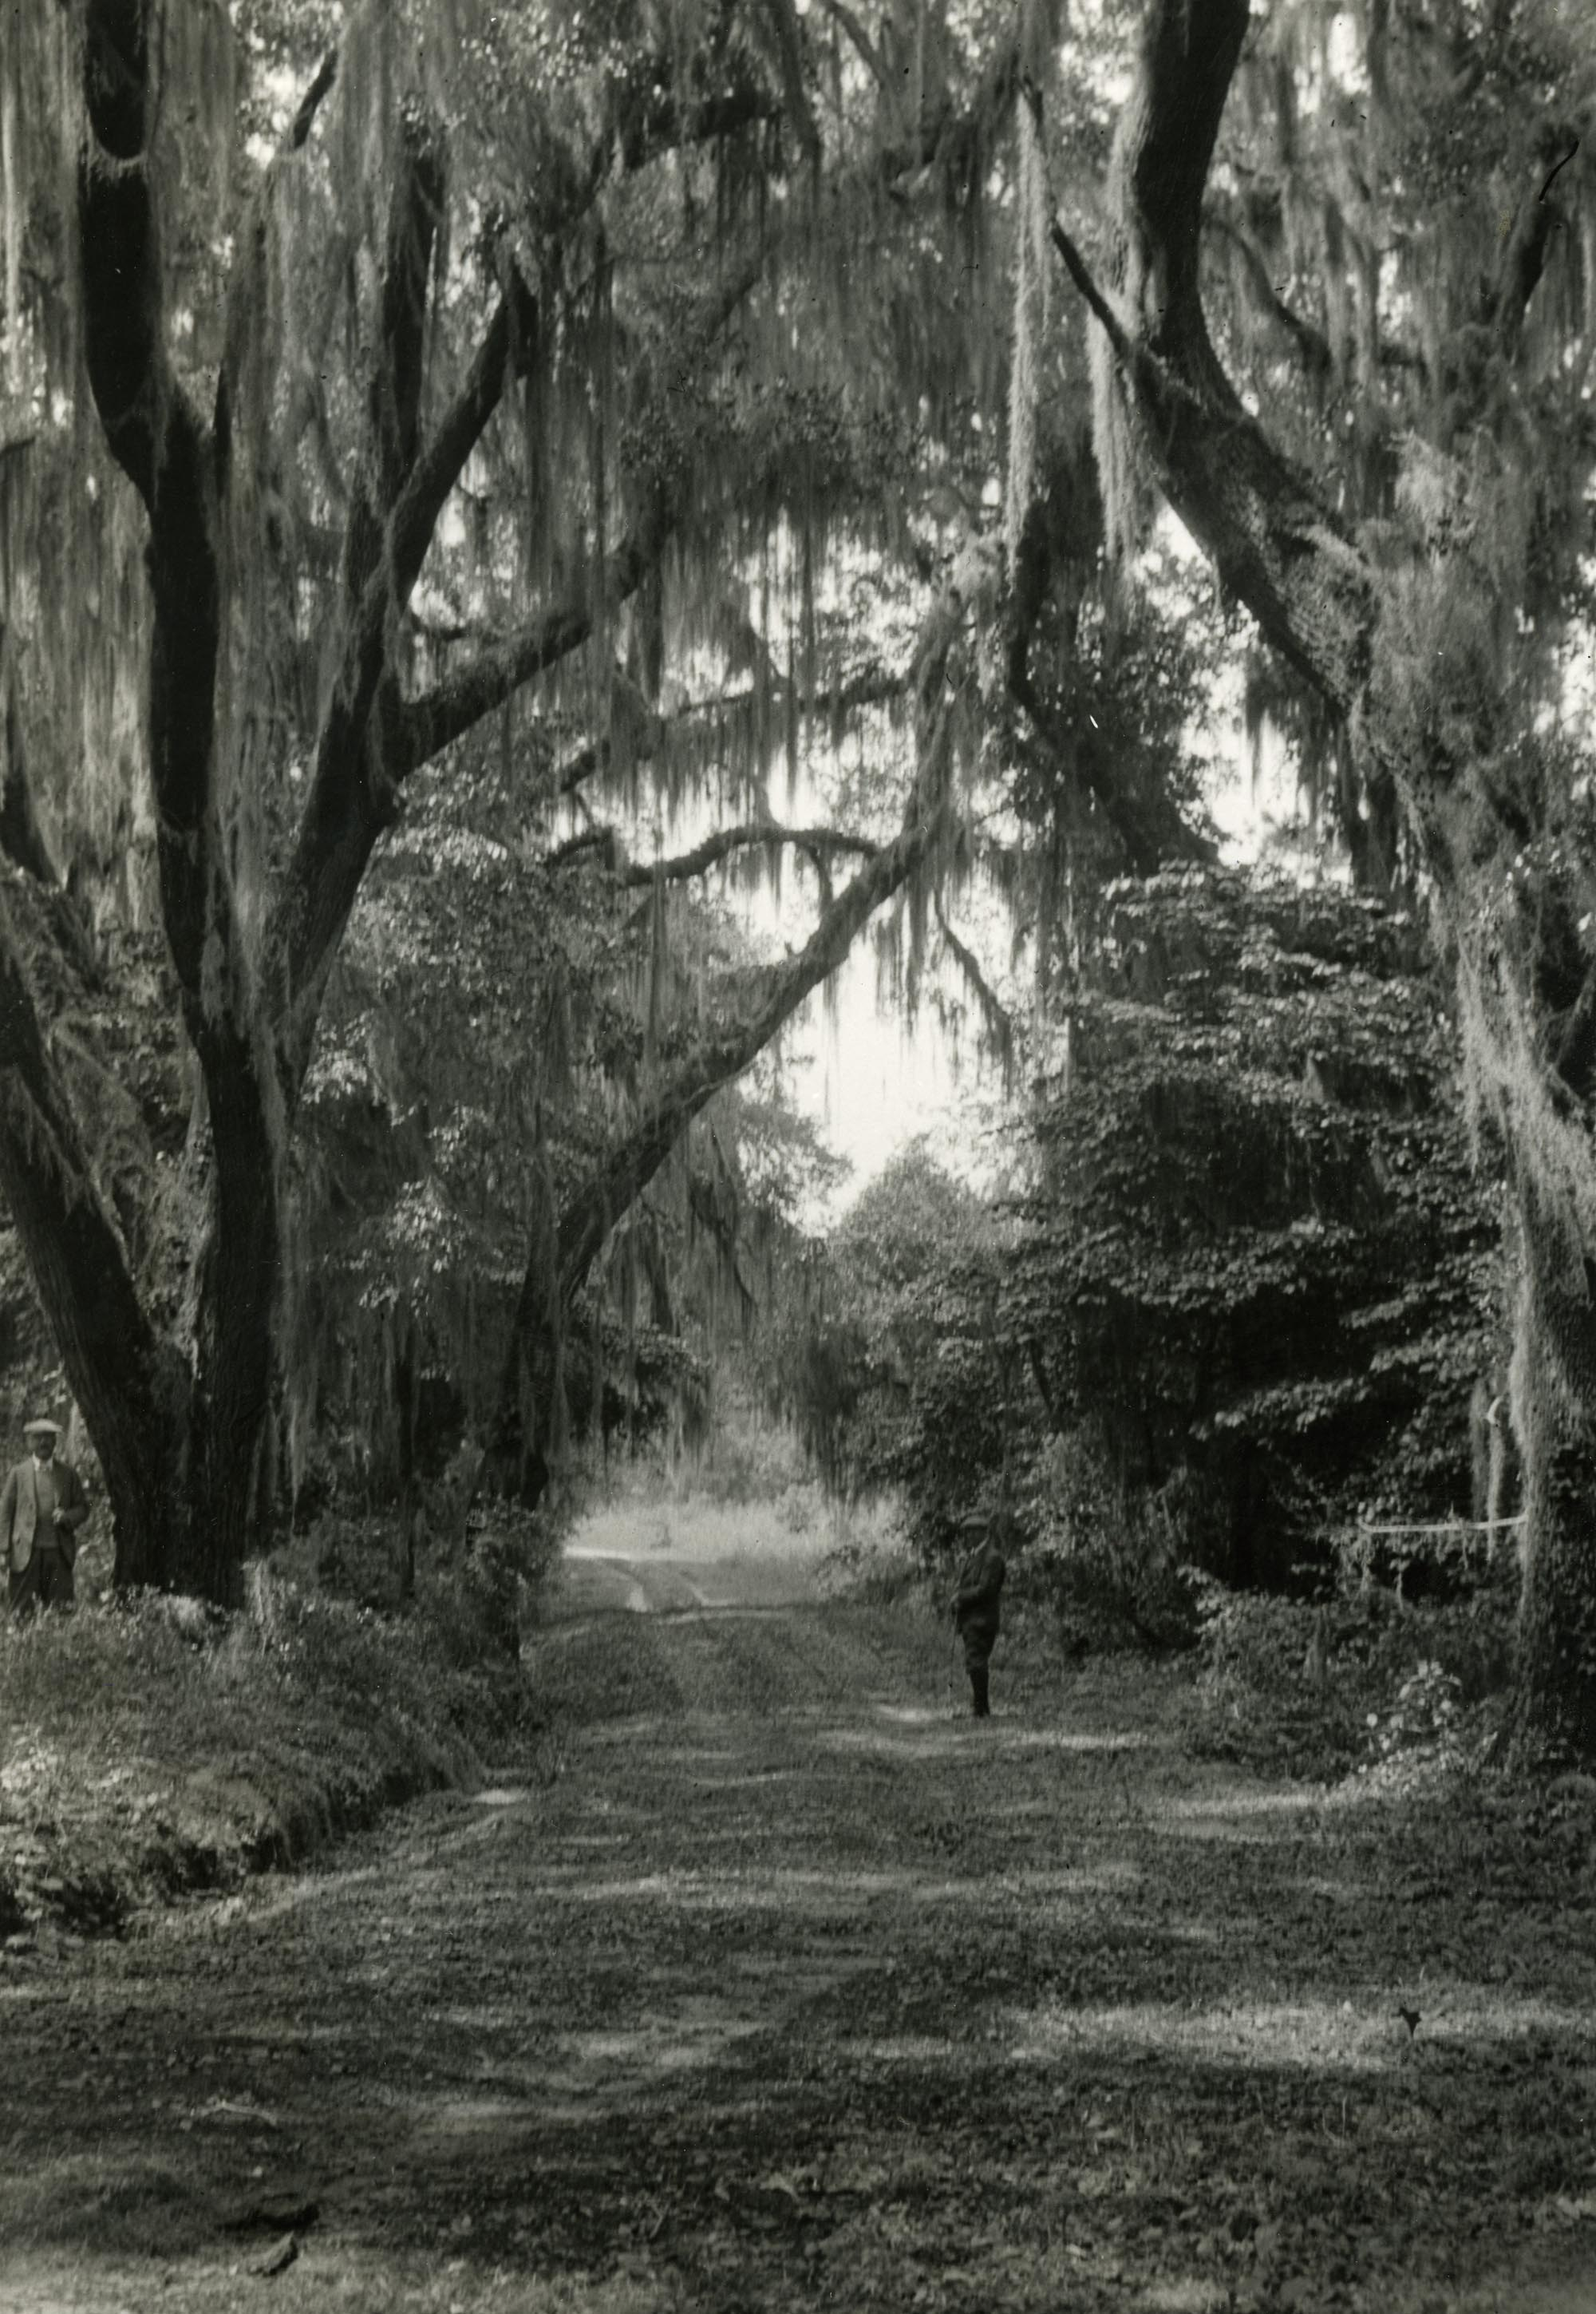 Plantations, Yeamans Hall Plantation